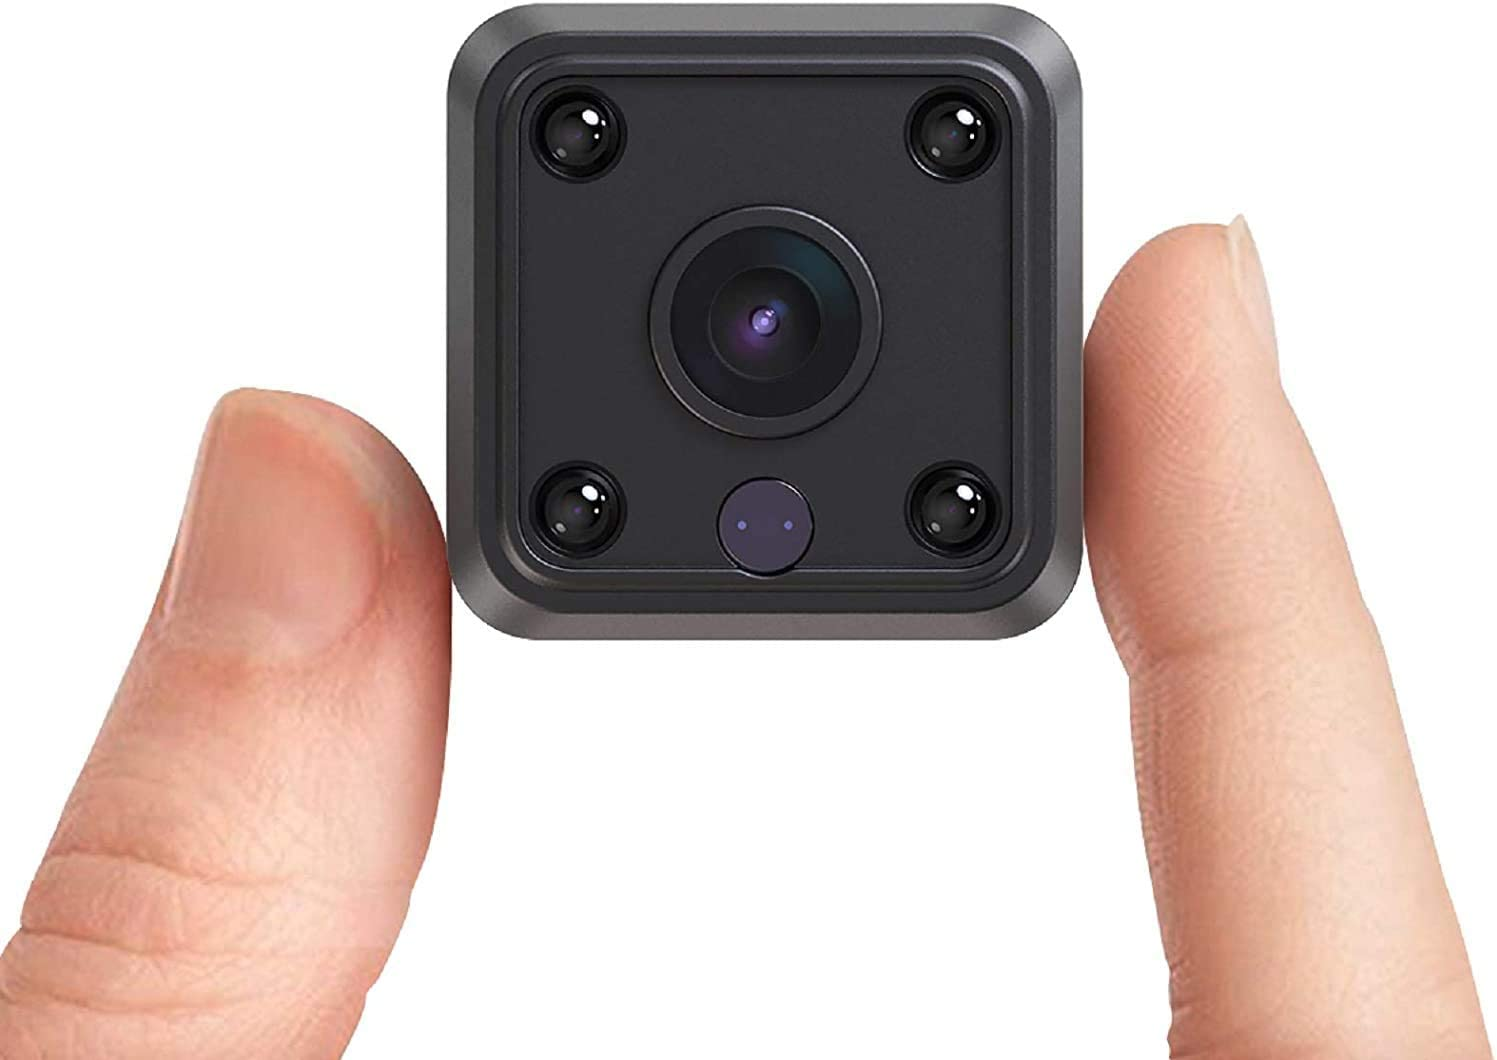 Mini Spy Camera HD Hidden Camera - Portable Small HD Nanny Cam with Night Vision and Motion Detection - Indoor Covert Security Camera for Home and Office - Hidden Spy Cam - Built-in Battery